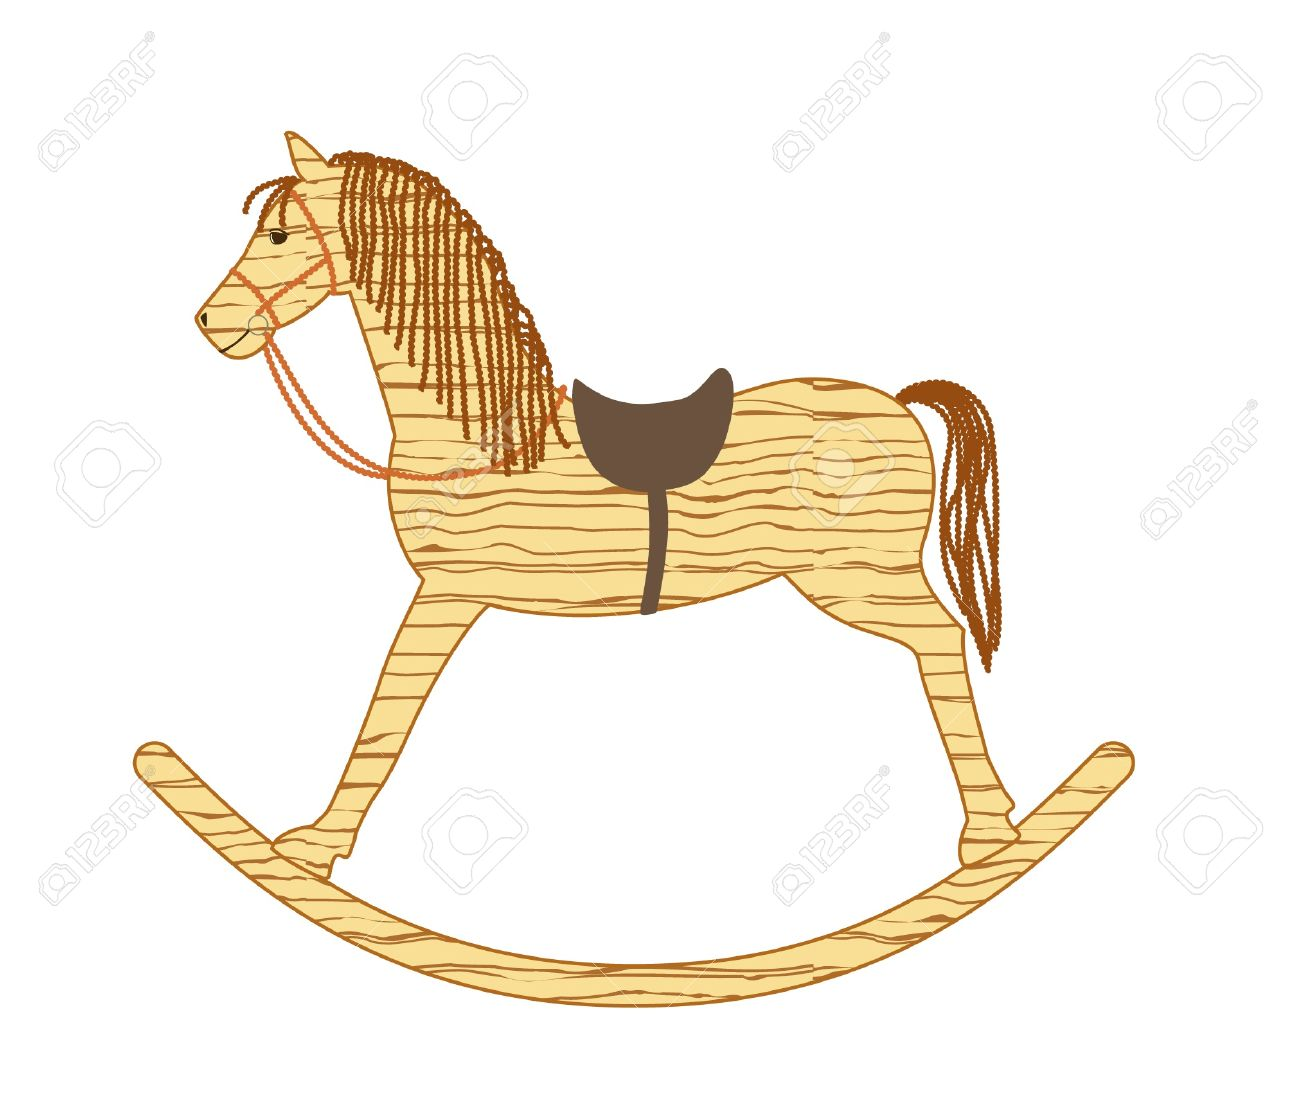 Wooden Rocking Horse Royalty Free Cliparts, Vectors, And Stock.